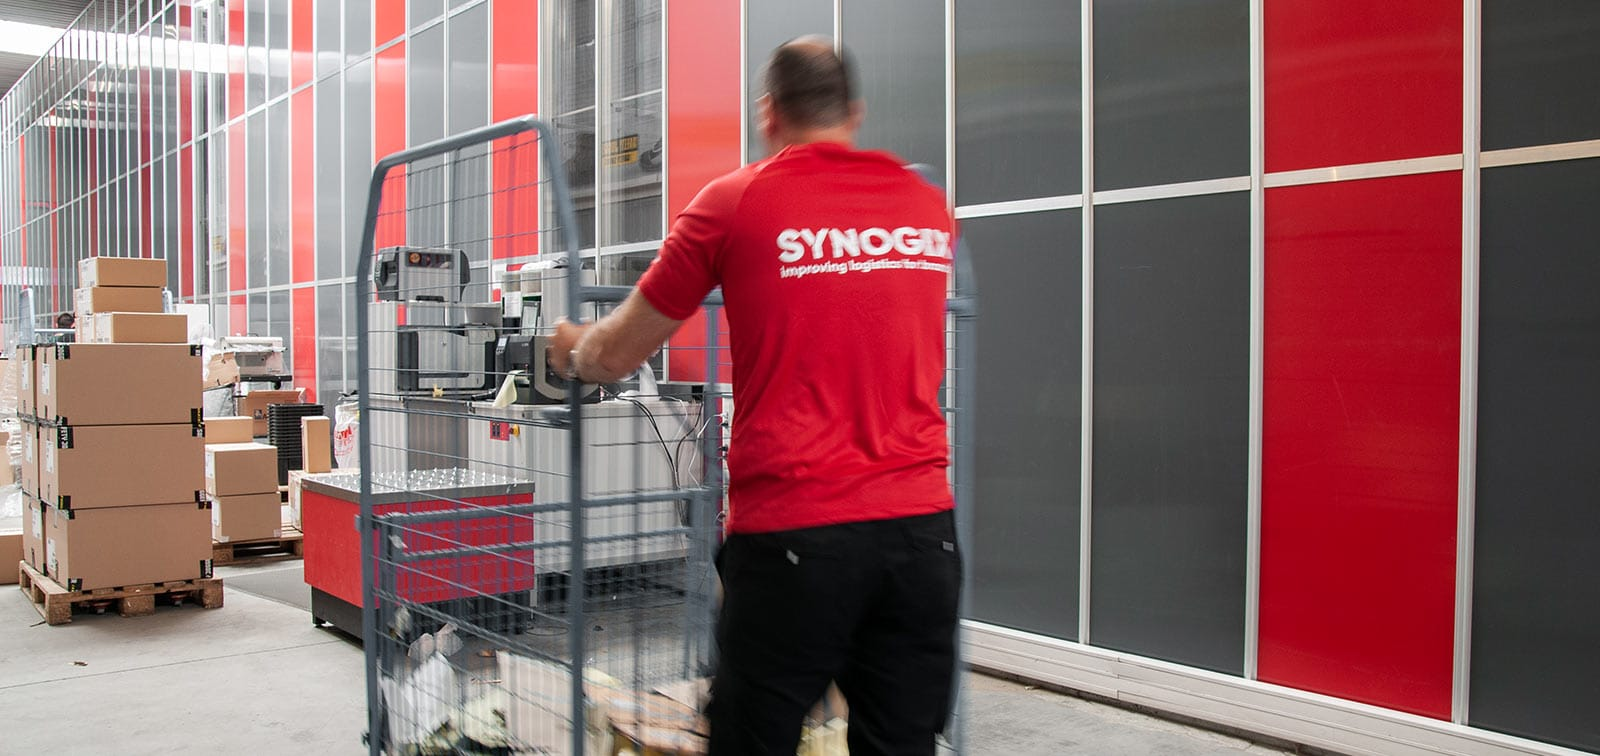 autostore synogix